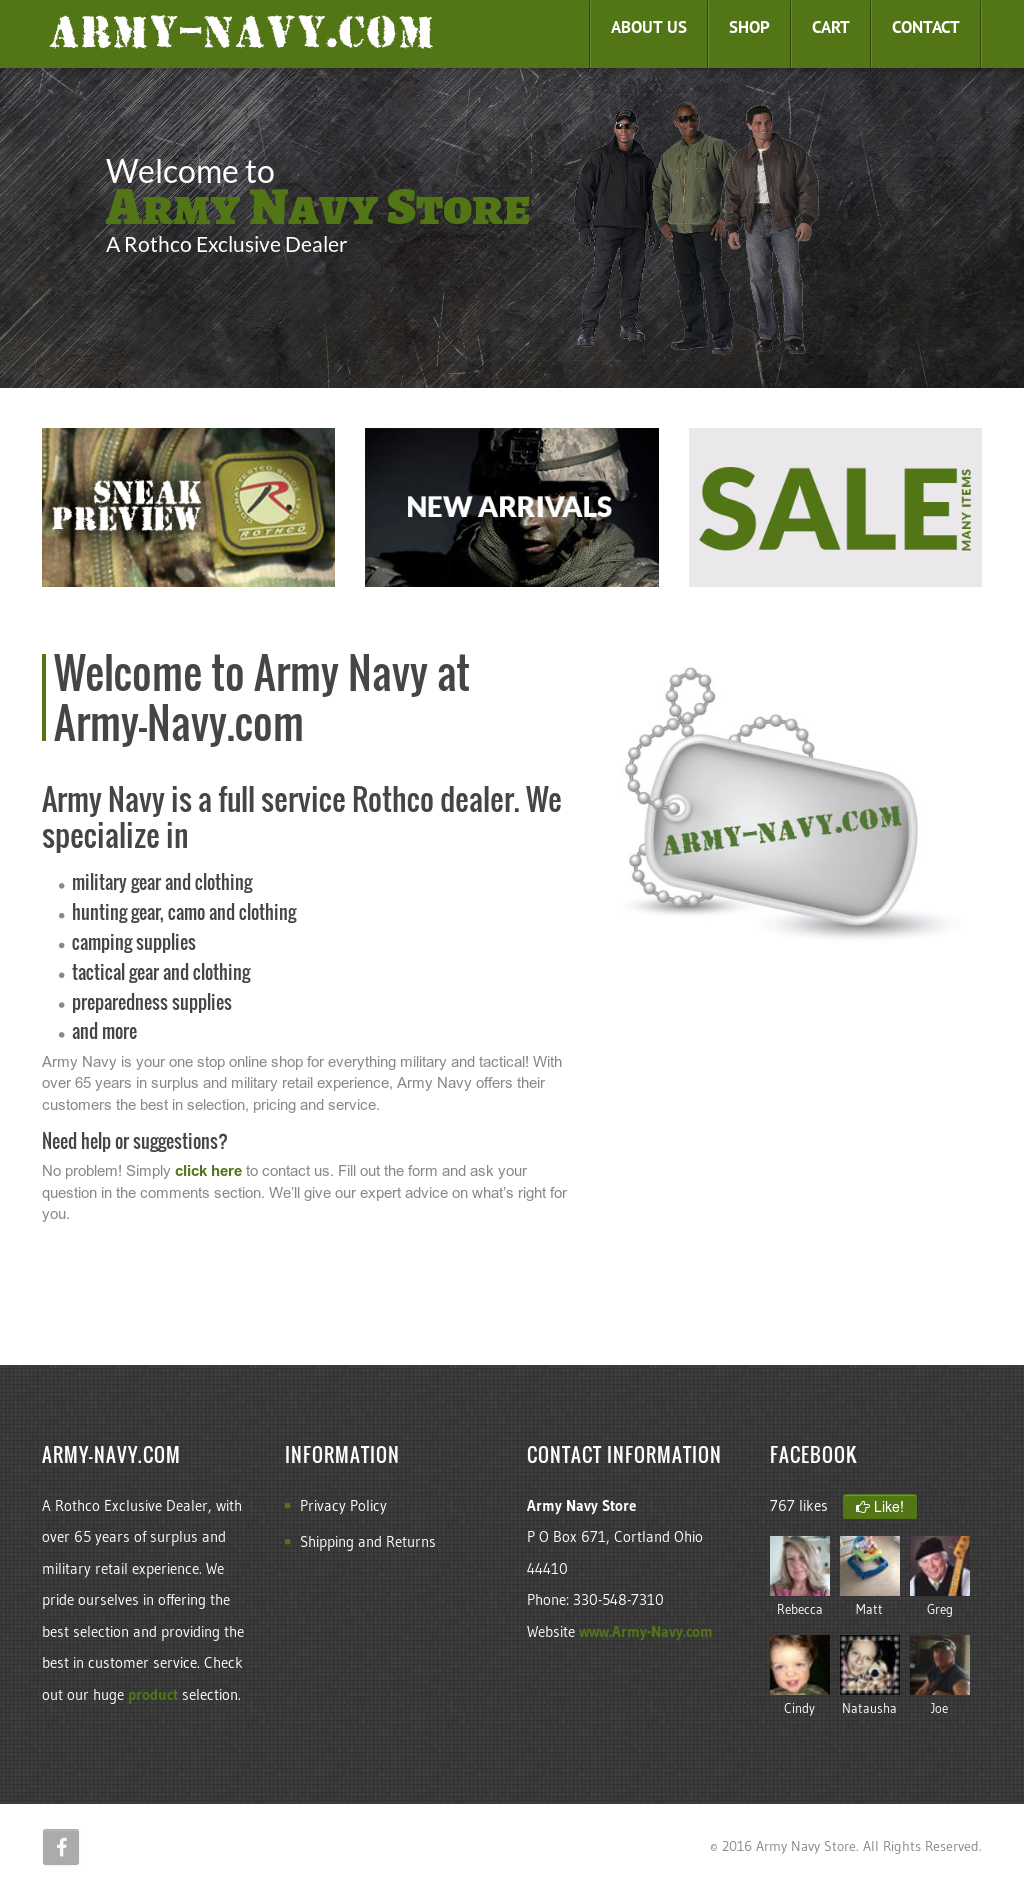 Mickey's Army & Navy Store Competitors, Revenue and